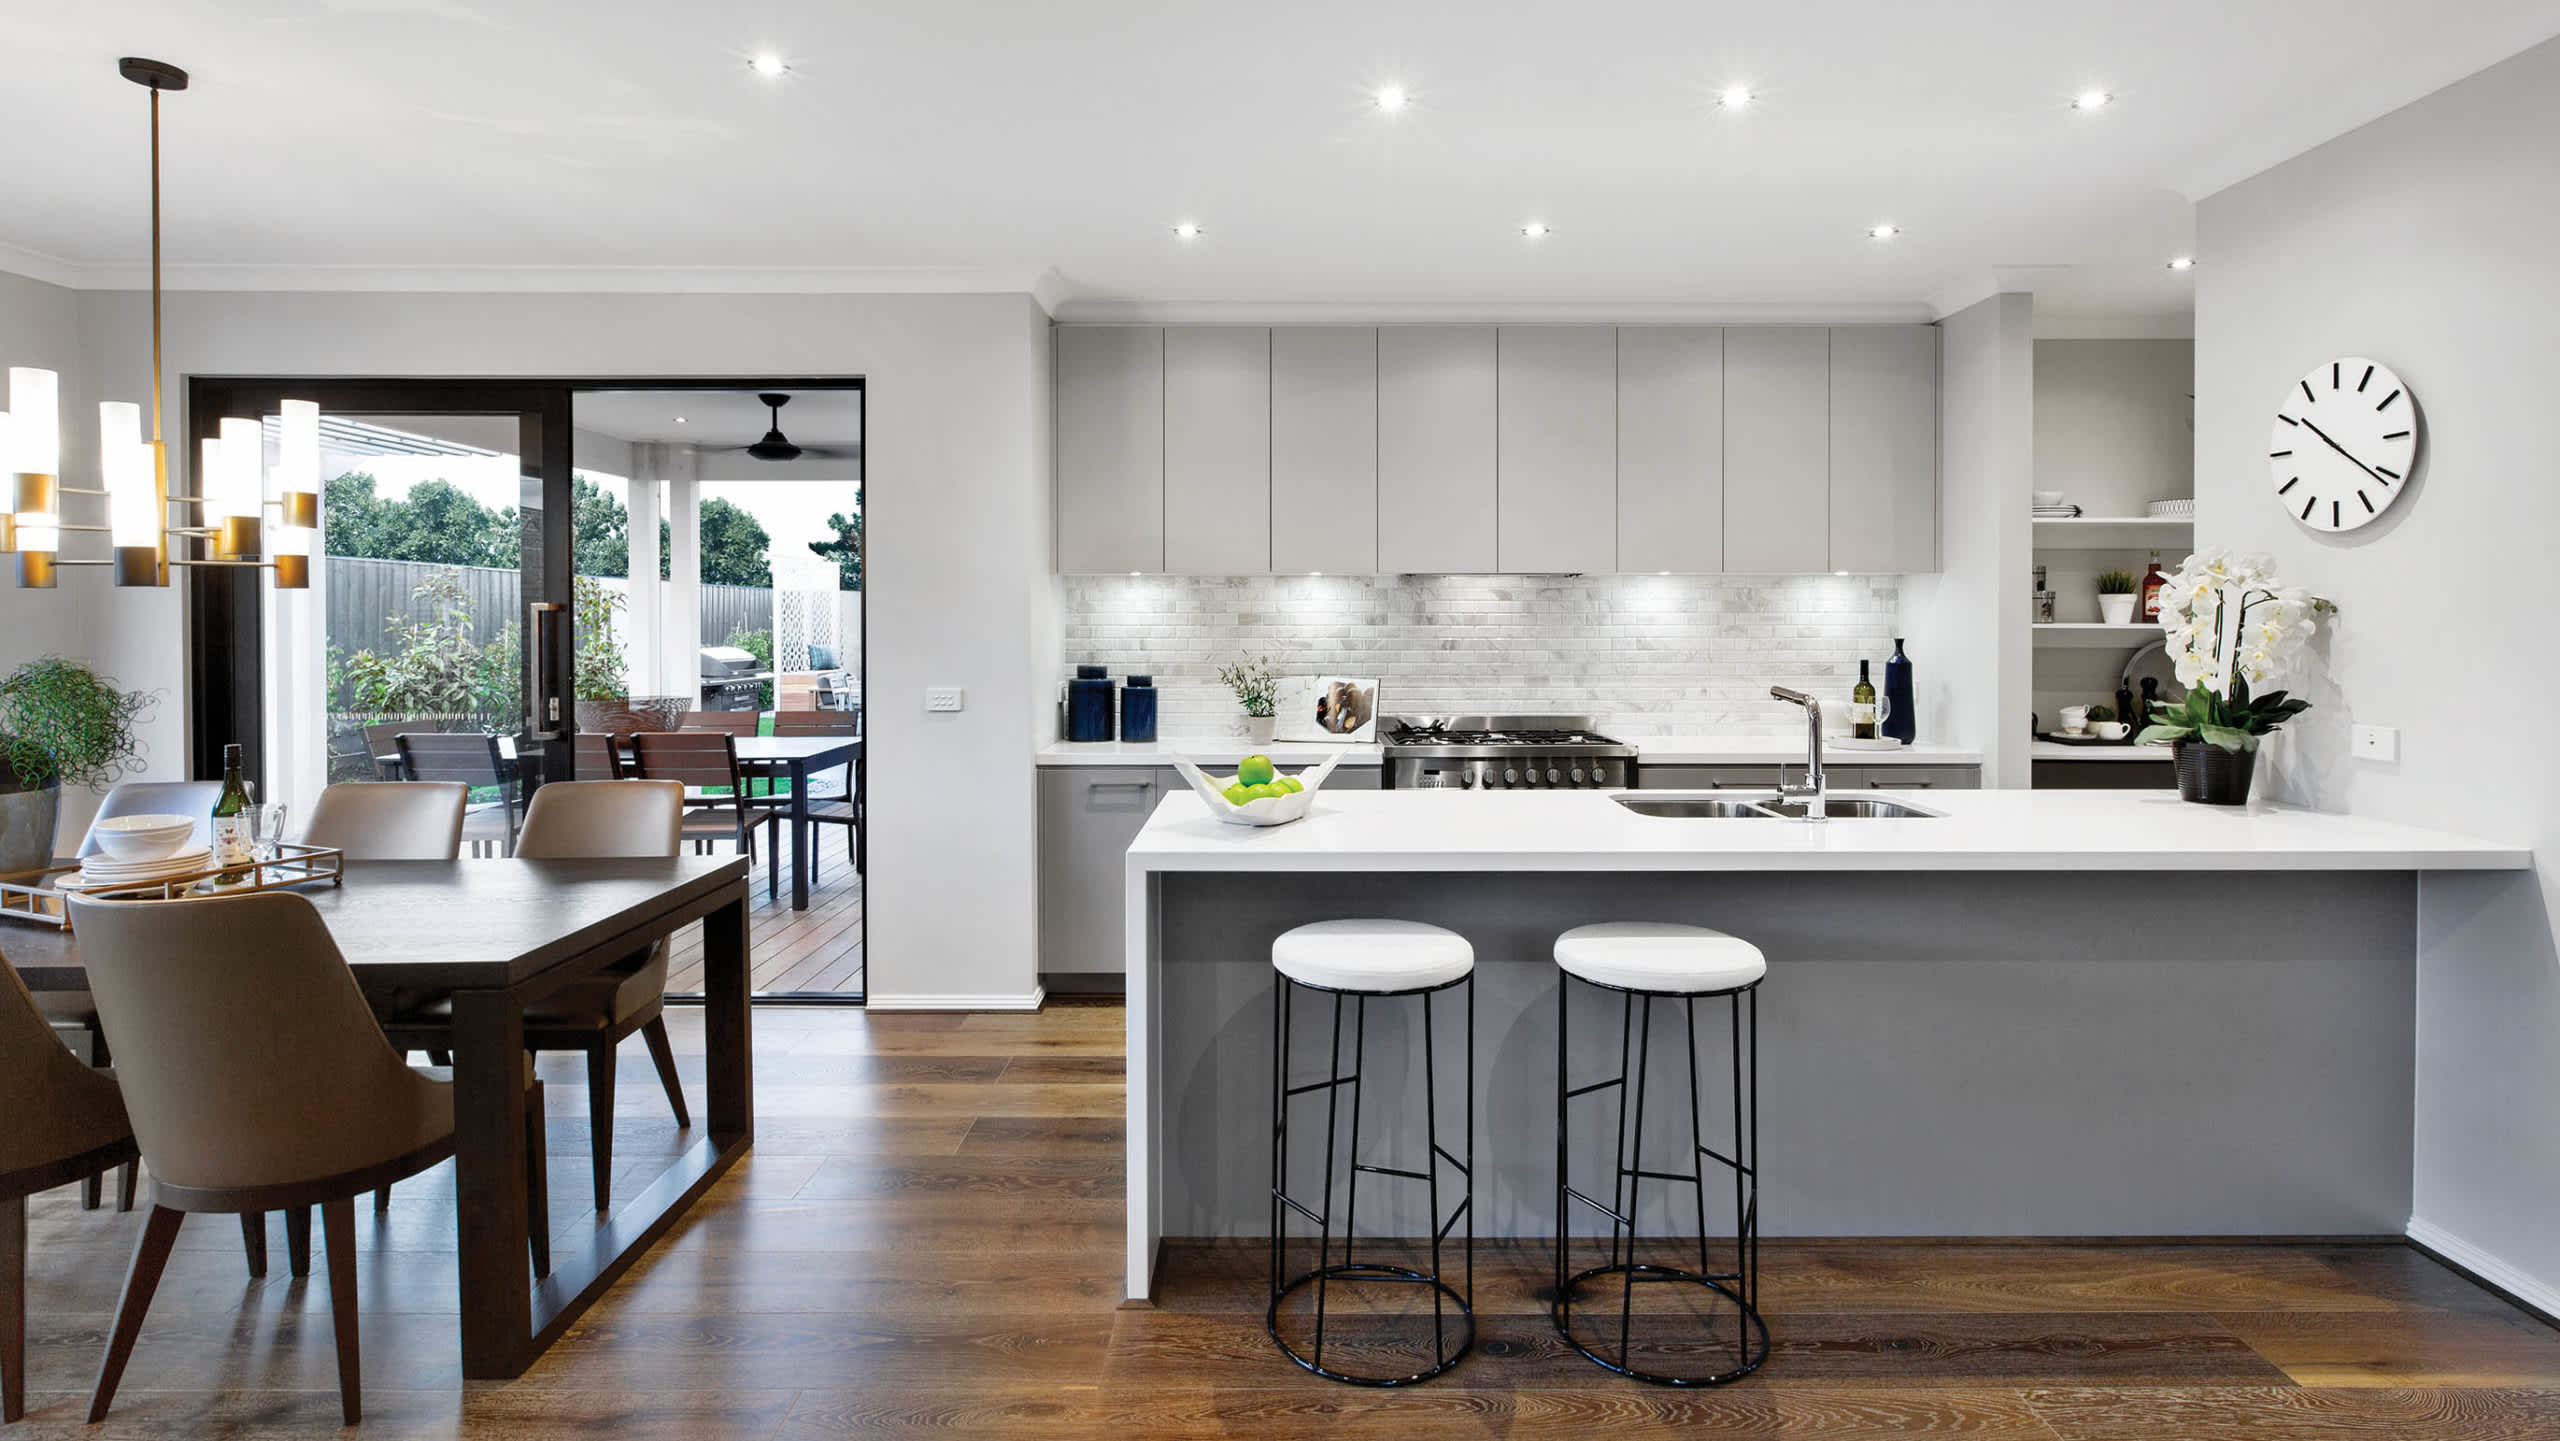 Create a kitchen to suit your tastes with these tips and tricks